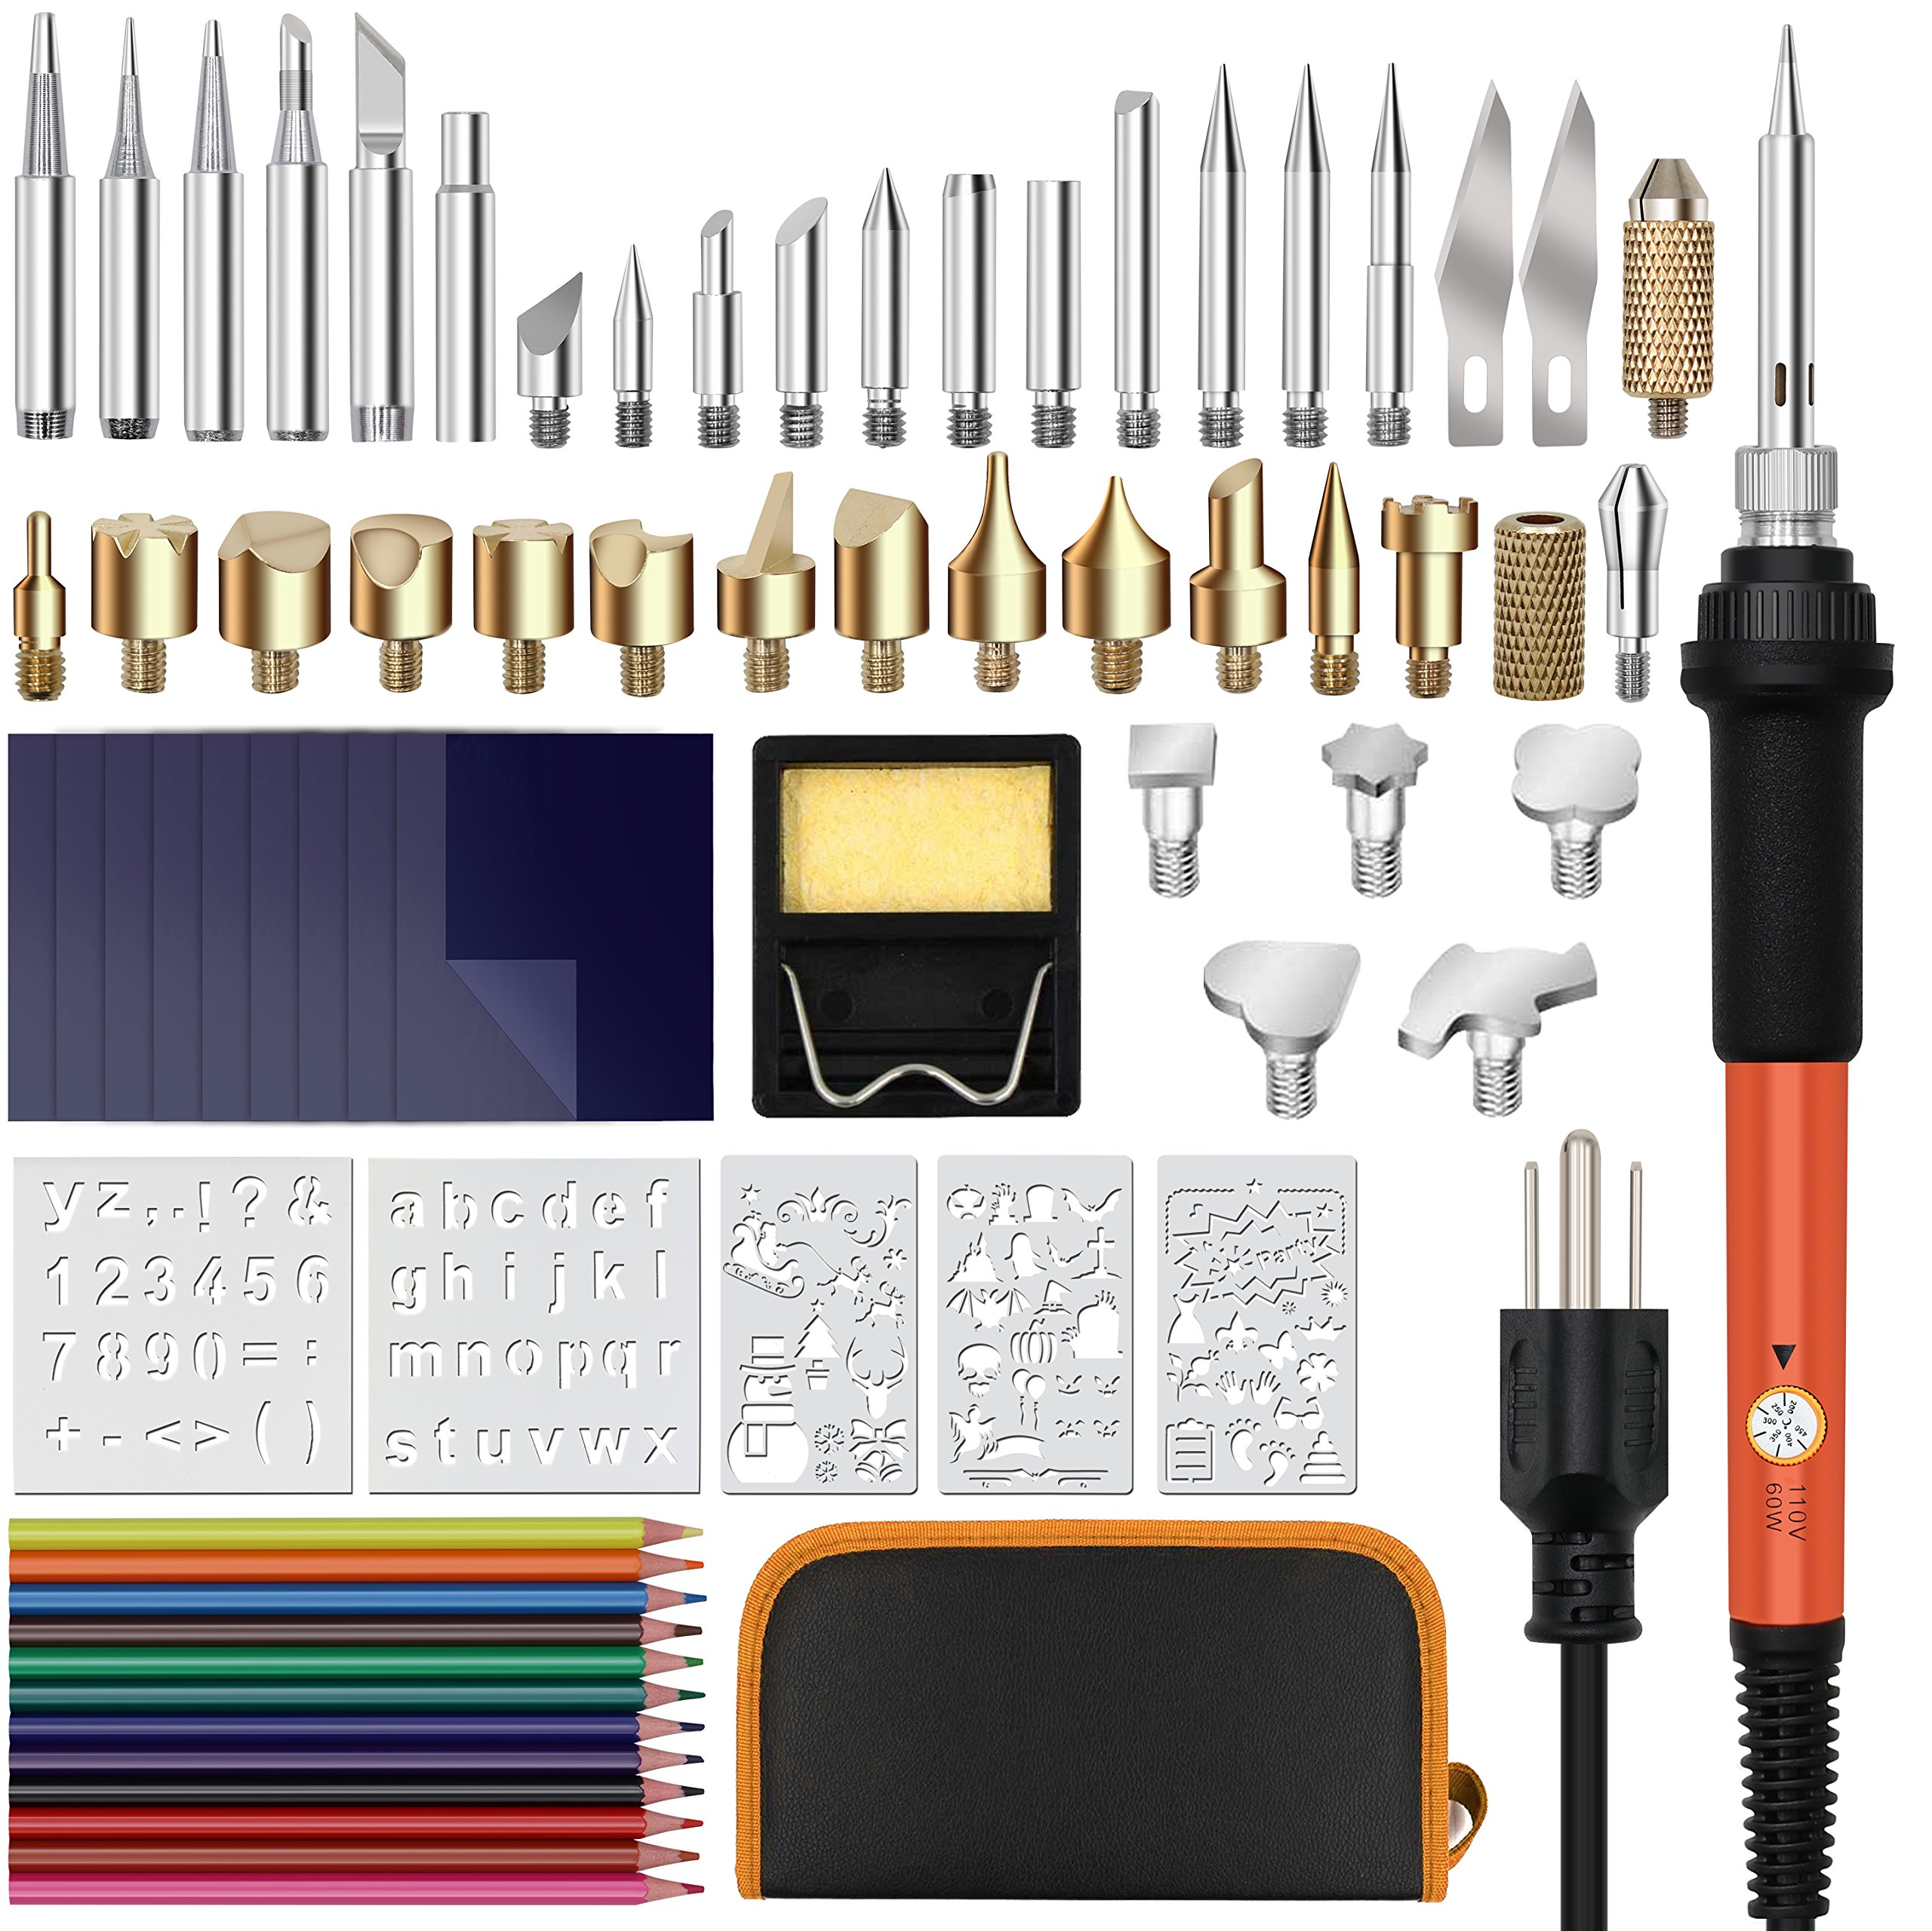 Qimh Wood Burning Kit, 70pcs Soldering Iron Set Adjustable Temp Include Carving/Embossing/Wood Burning Tips, Soldering Iron Pen, Stencils, Converter, Stand and Carry Case